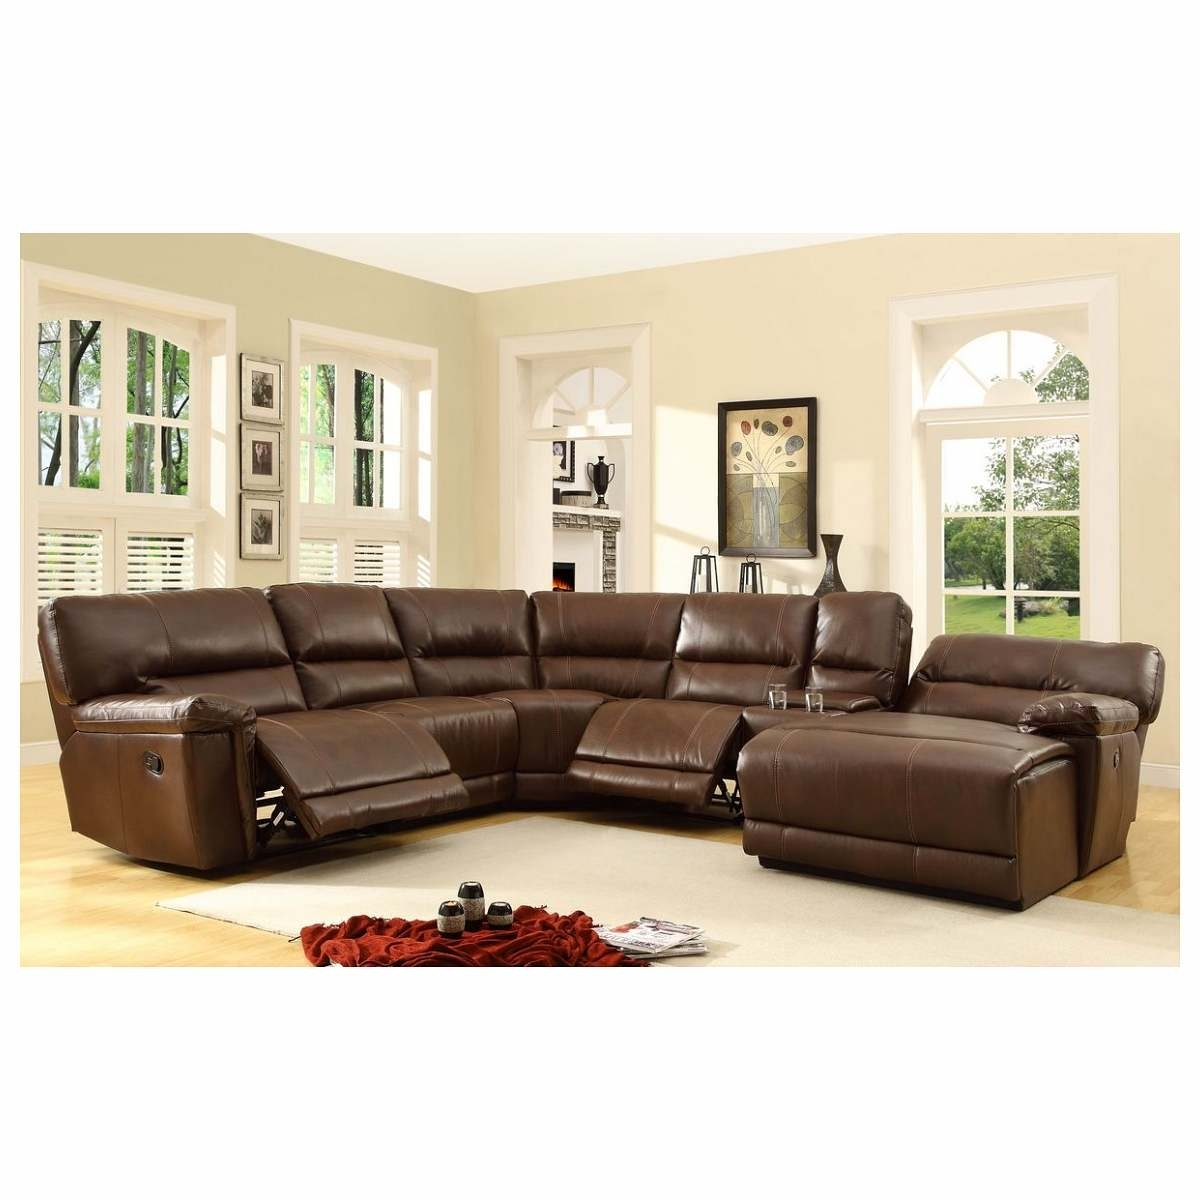 6 Pc Blythe Collection Brown Bonded Leather Match Upholstered Pertaining To 6 Piece Leather Sectional Sofas (View 3 of 10)